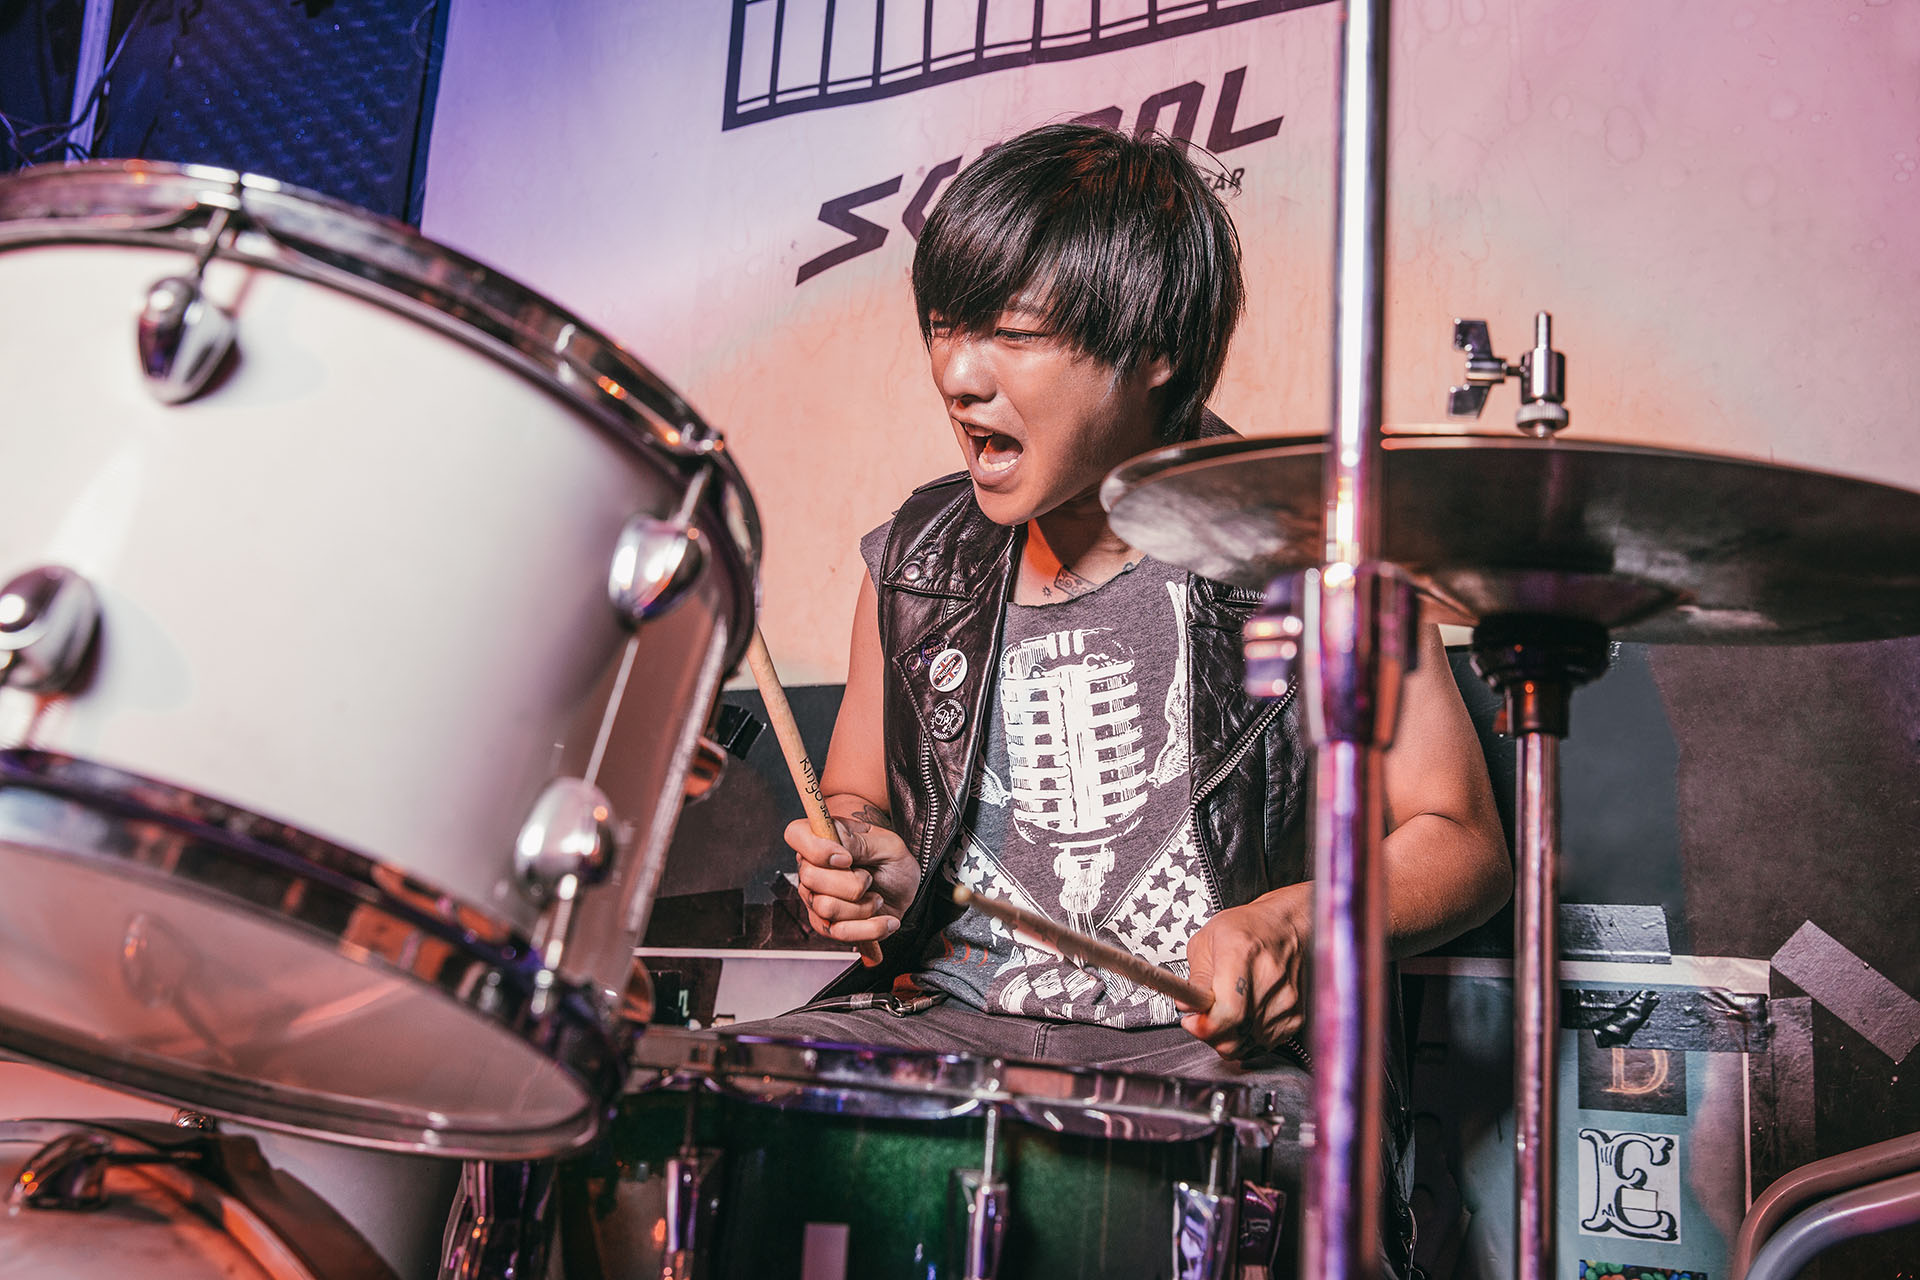 EP6A4813_APPDrumLive